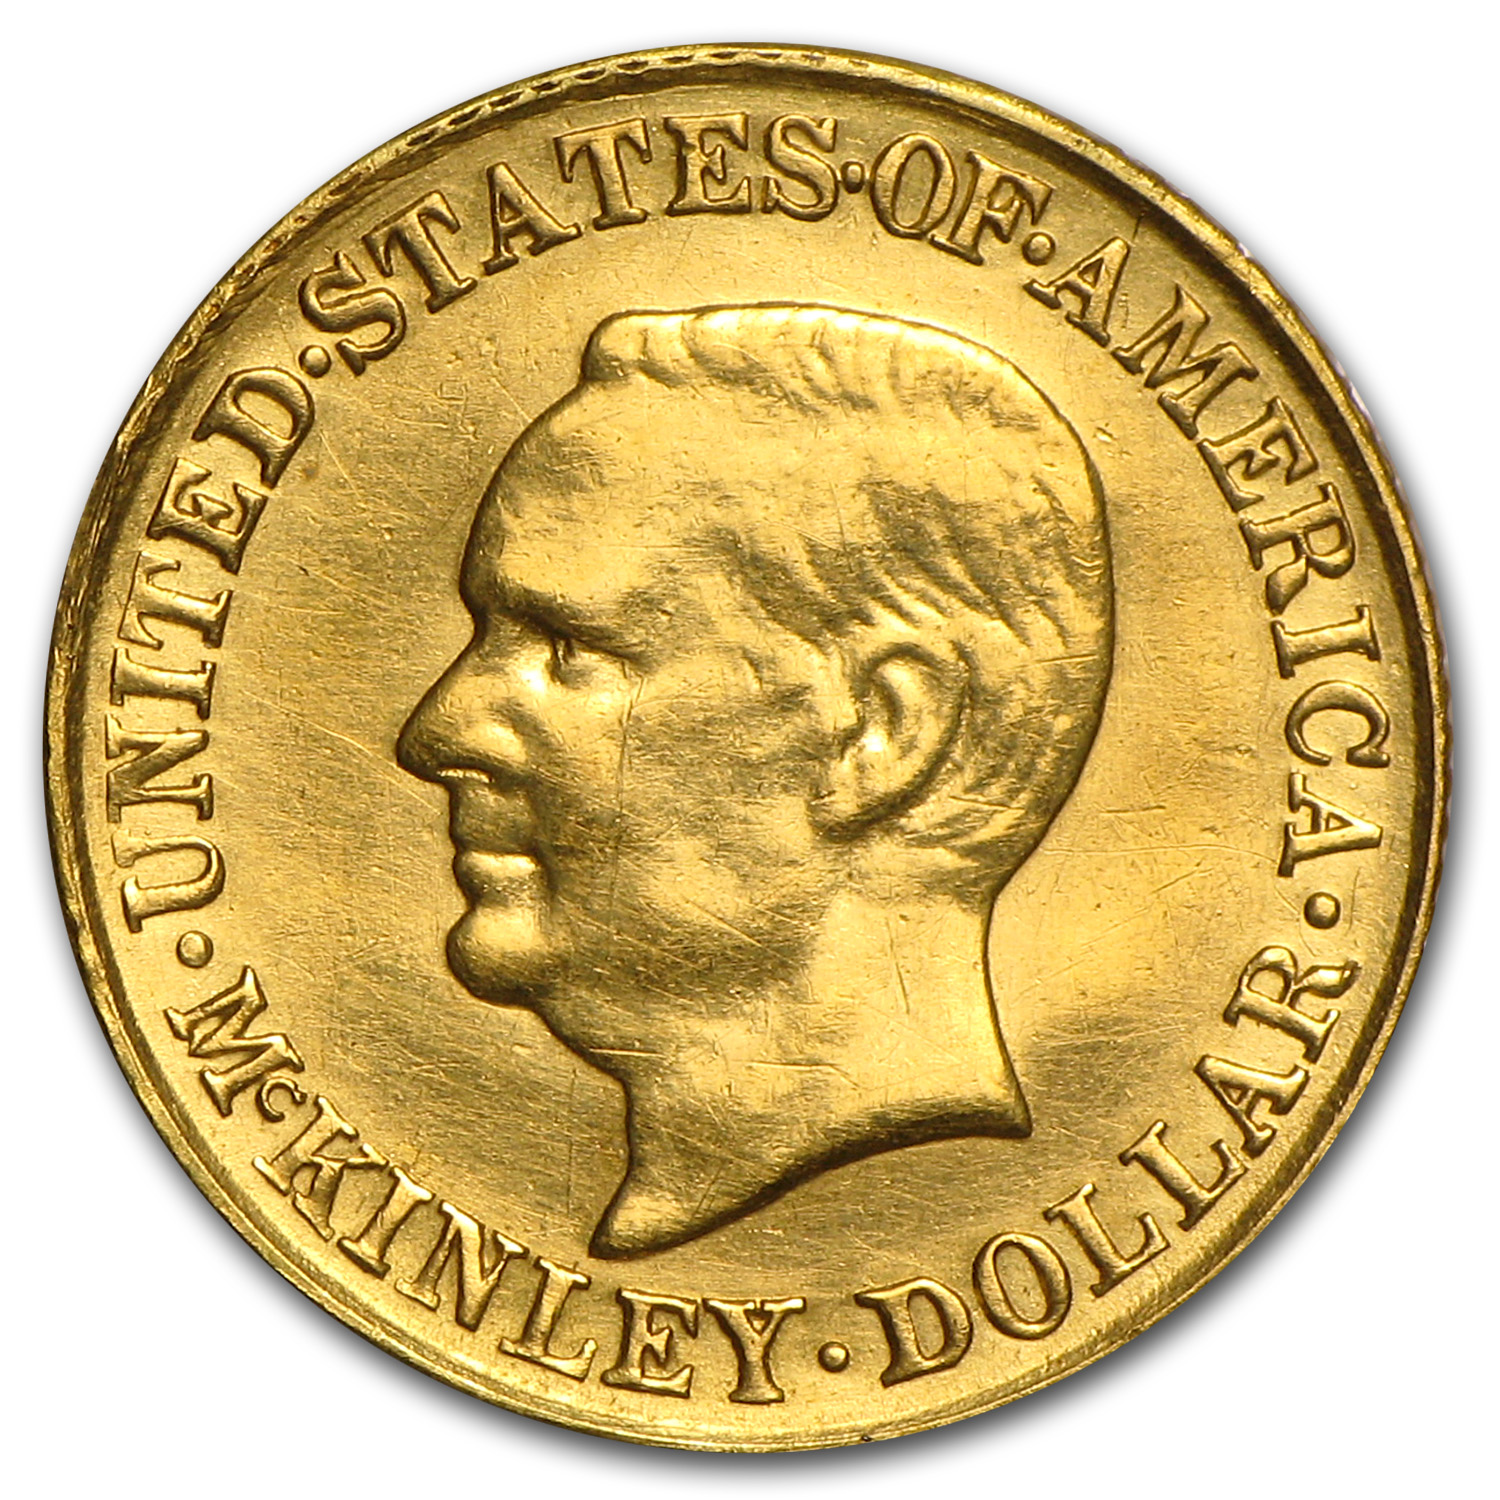 1916 $1.00 Gold McKinley - Almost Uncirculated Details